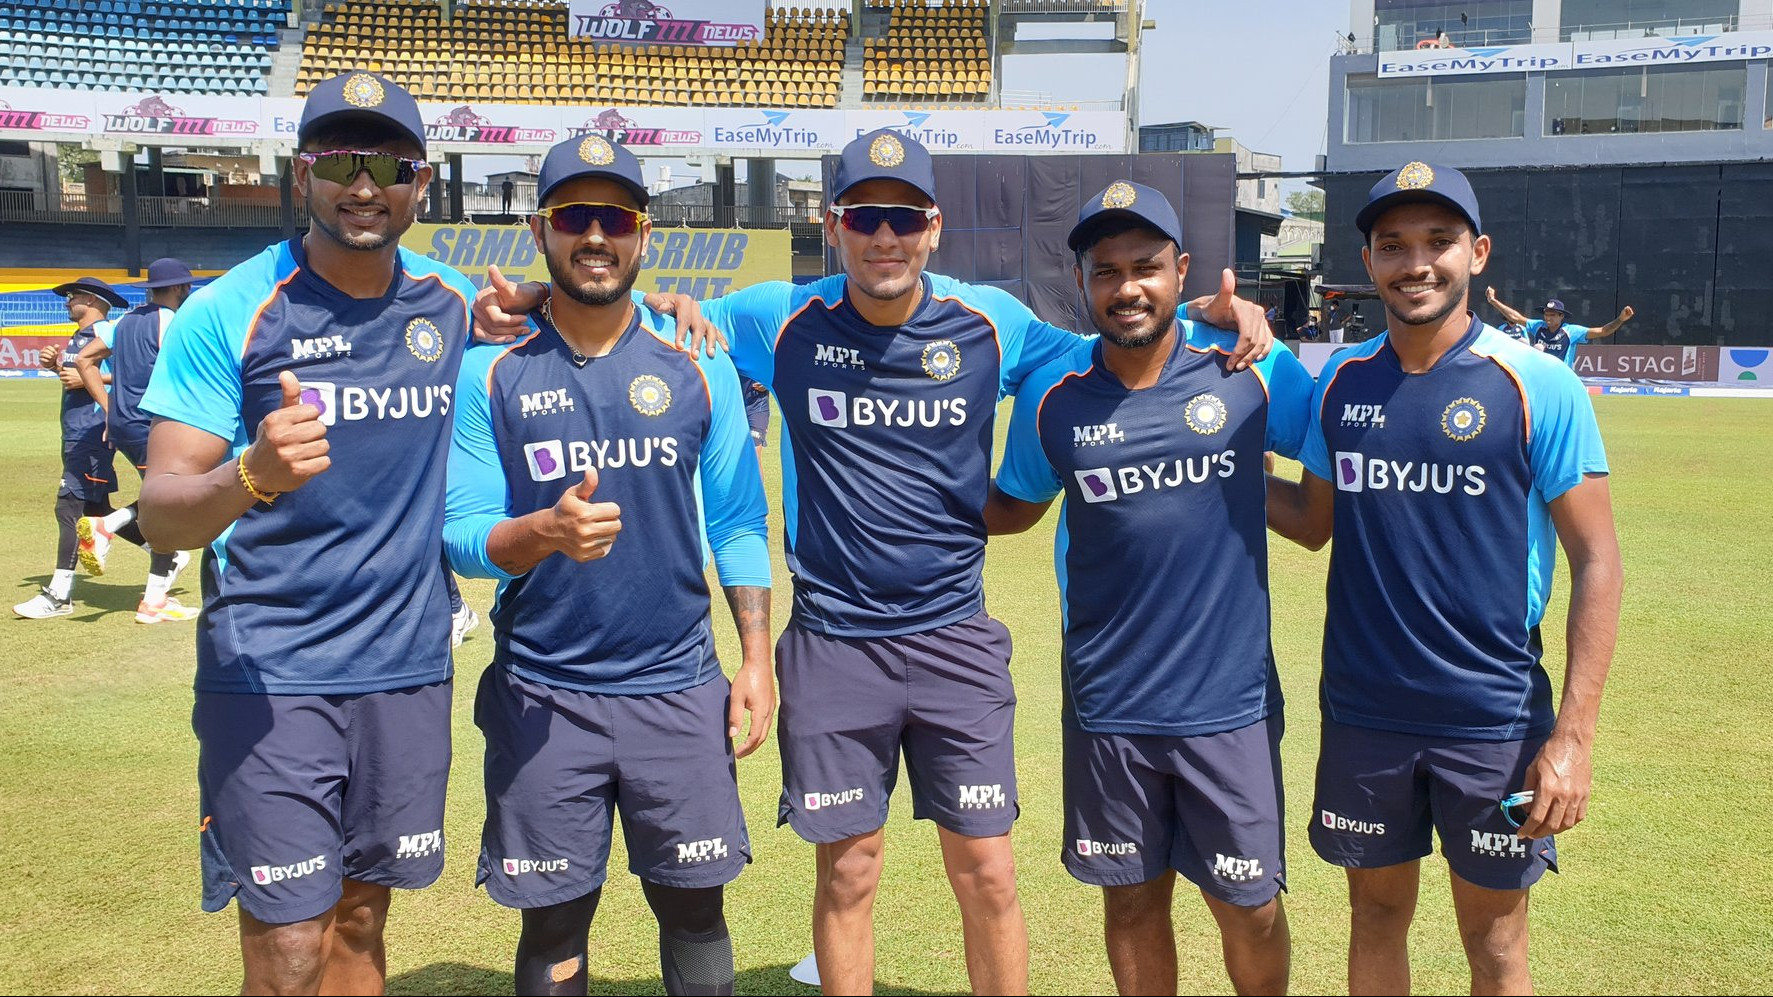 SL v IND 2021: WATCH - Team India hand ODI debut caps to five cricketers for the dead rubber